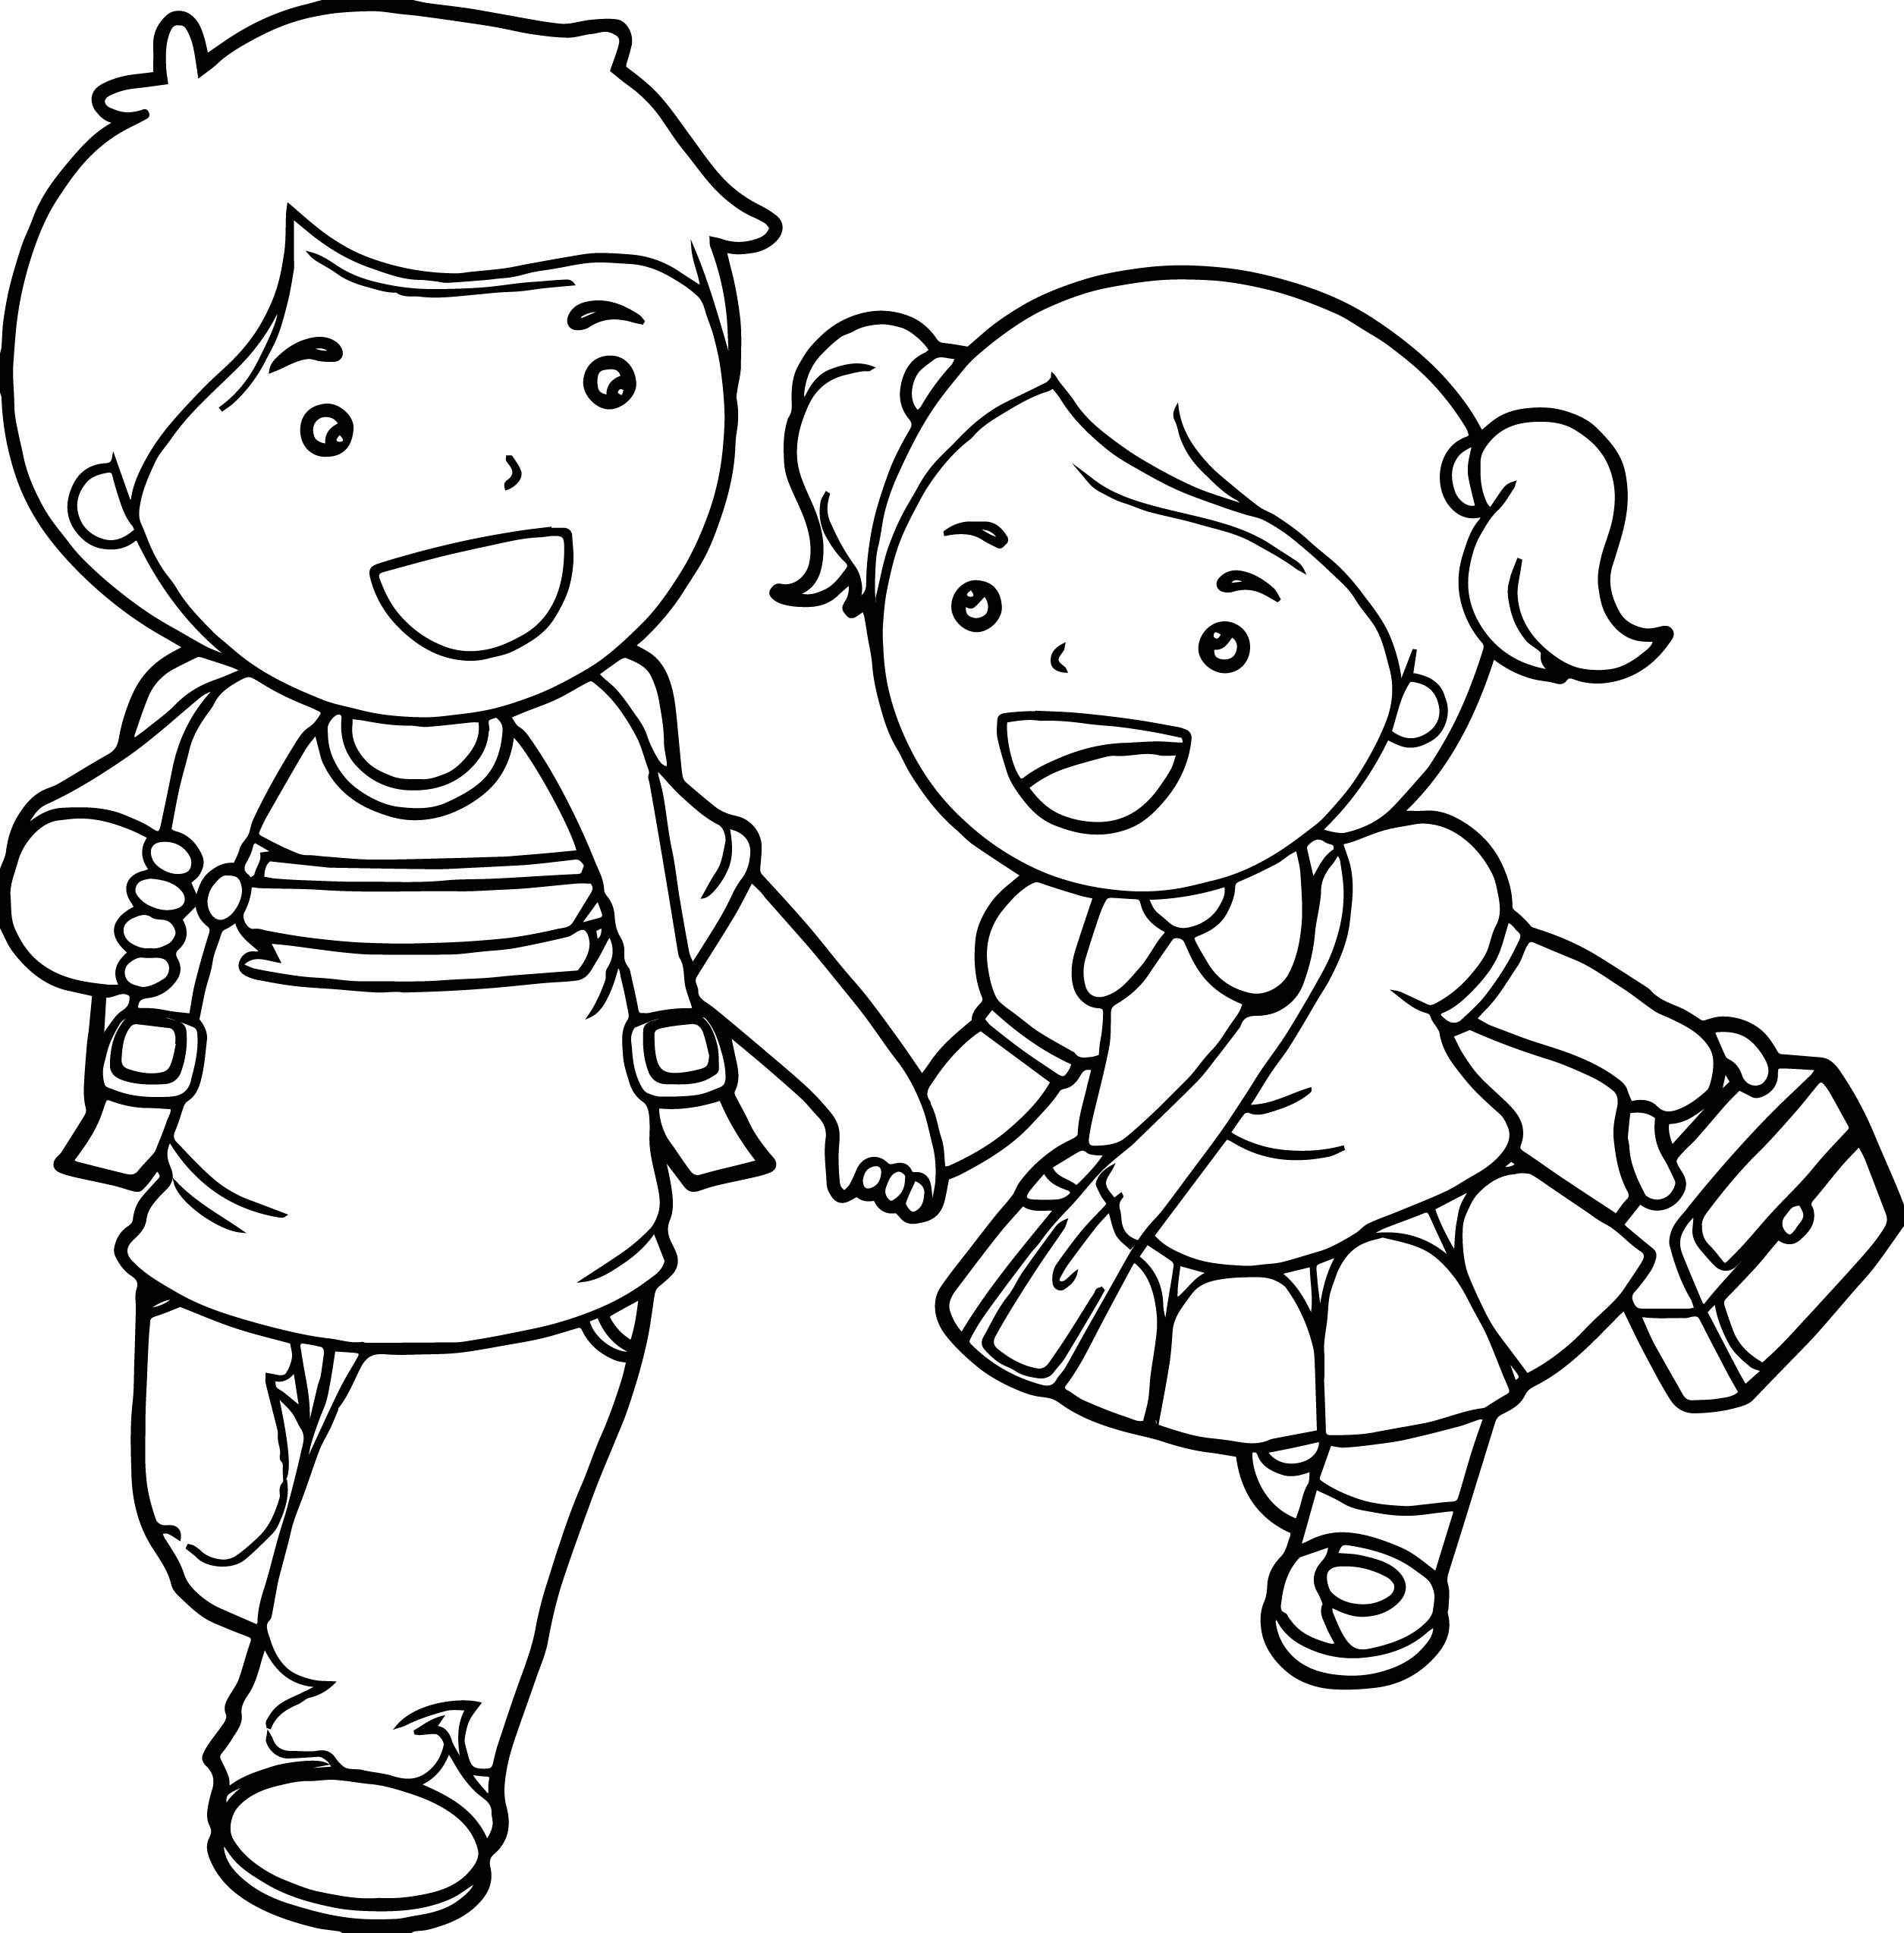 Free Printable Coloring Pages For Girls And Boys  Fun Coloring Pages For Boys And Girls The Art Jinni